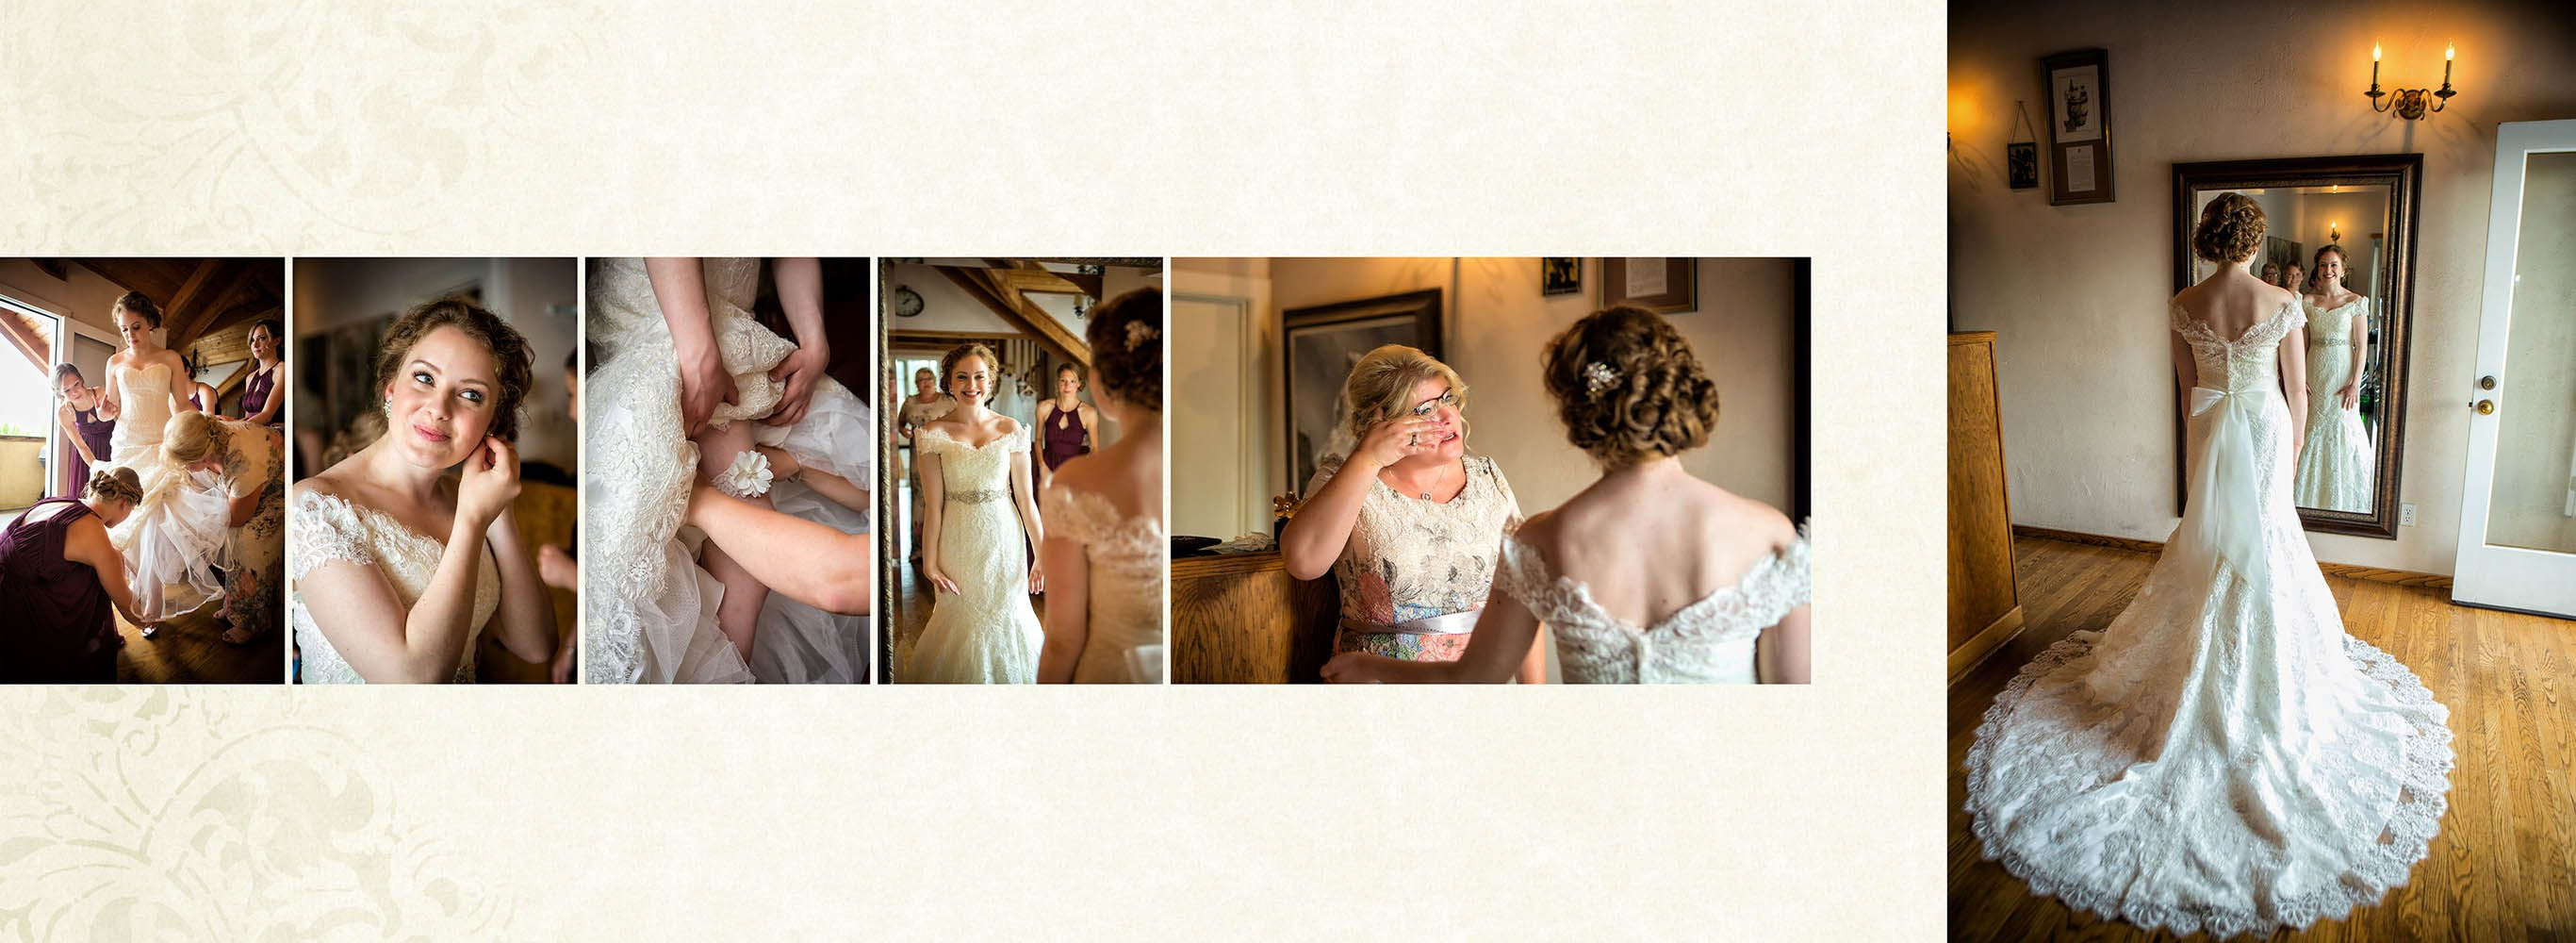 Winstanley Wedding Album V1-Spread-003.jpg